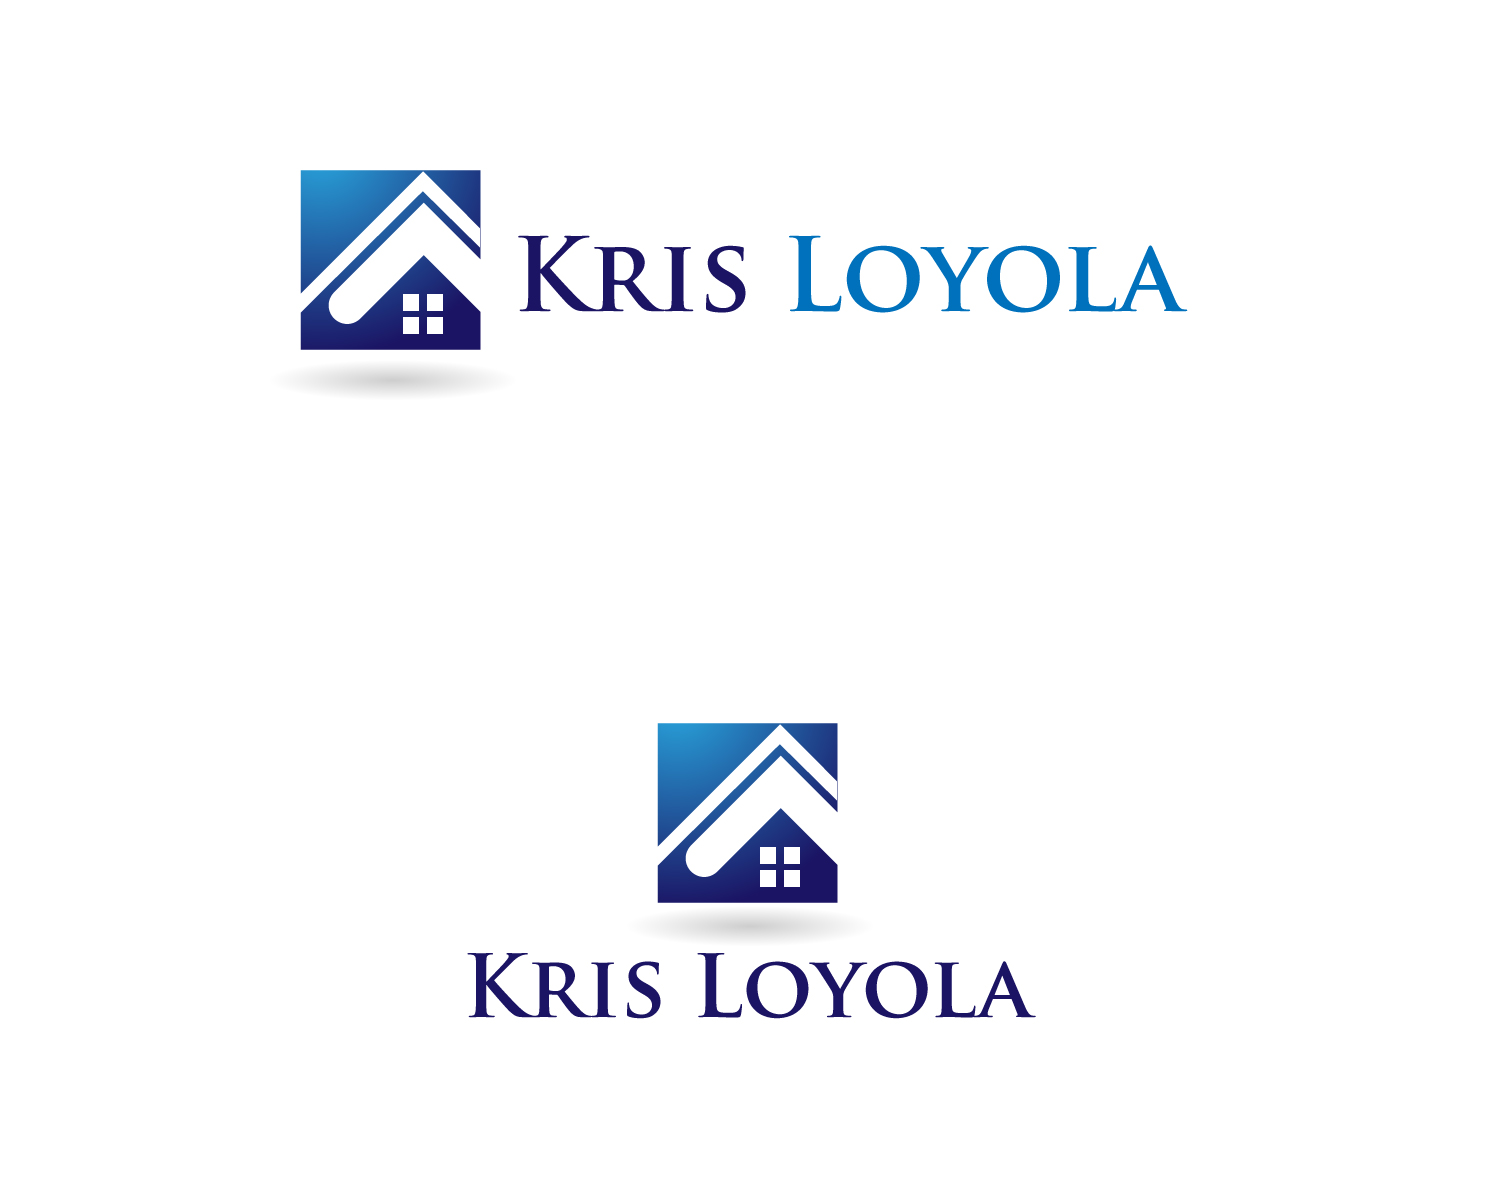 Logo Design by Jagdeep Singh - Entry No. 92 in the Logo Design Contest Kris Loyola Logo Design.